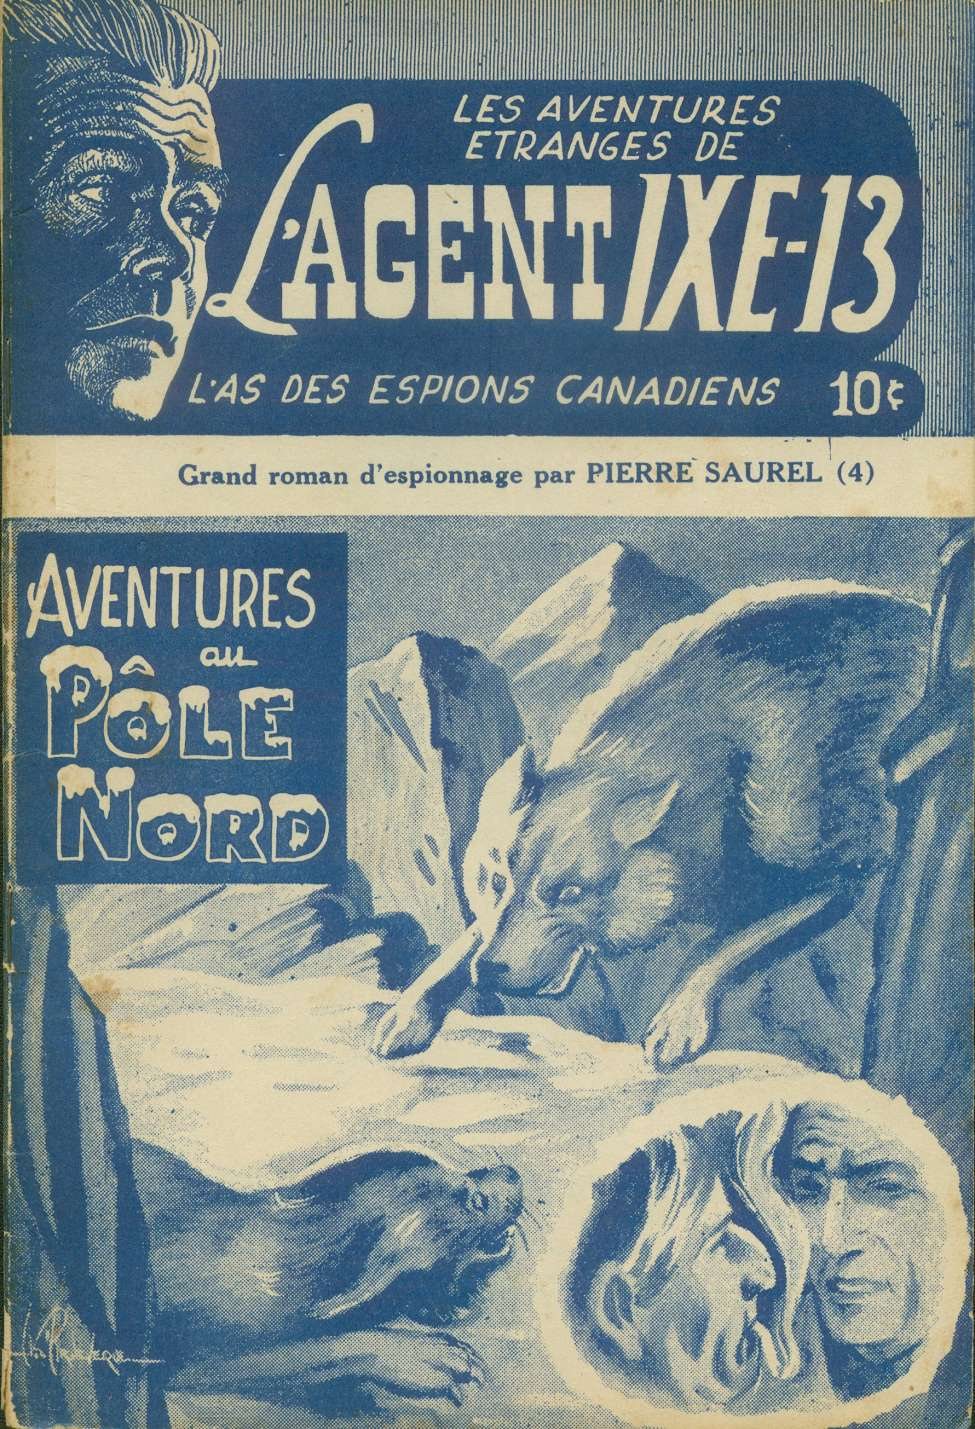 Comic Book Cover For L'Agent IXE-13 v2 004 – Aventures au pôle nord